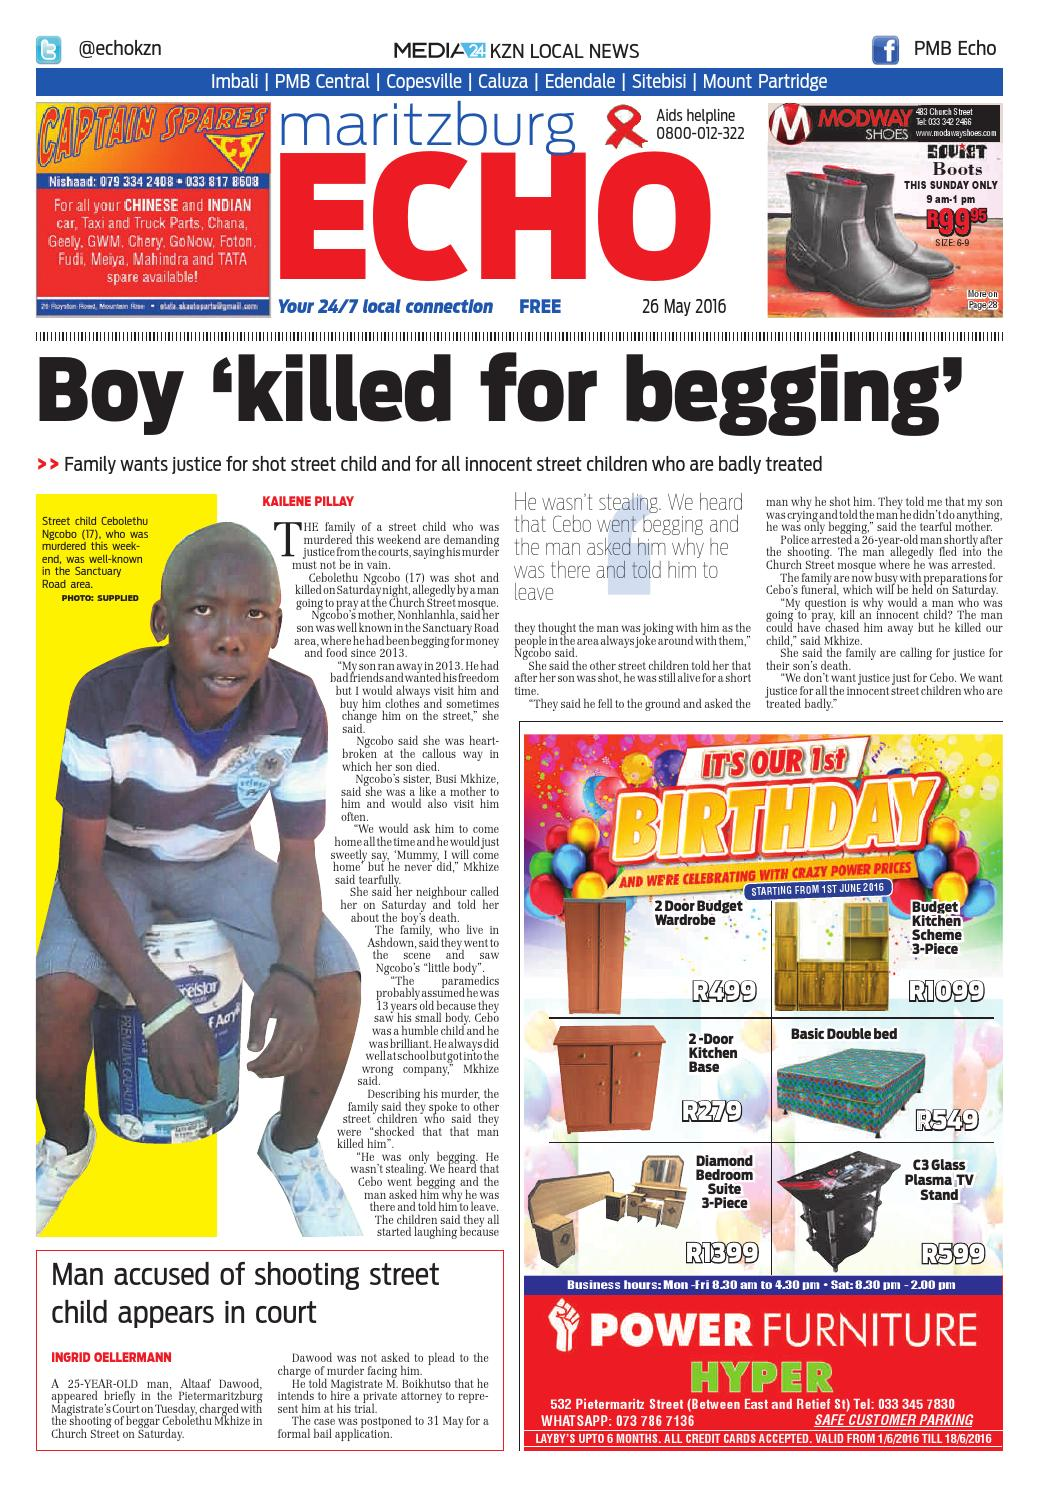 pietermaritzburg newspaper classifieds Published on thursdays in the echo, a community newspaper originally published by the witness, pietermaritzburg's local daily newspaper read by an estimated 250 000 people each week designed for low-literate adults with incomplete primary education.